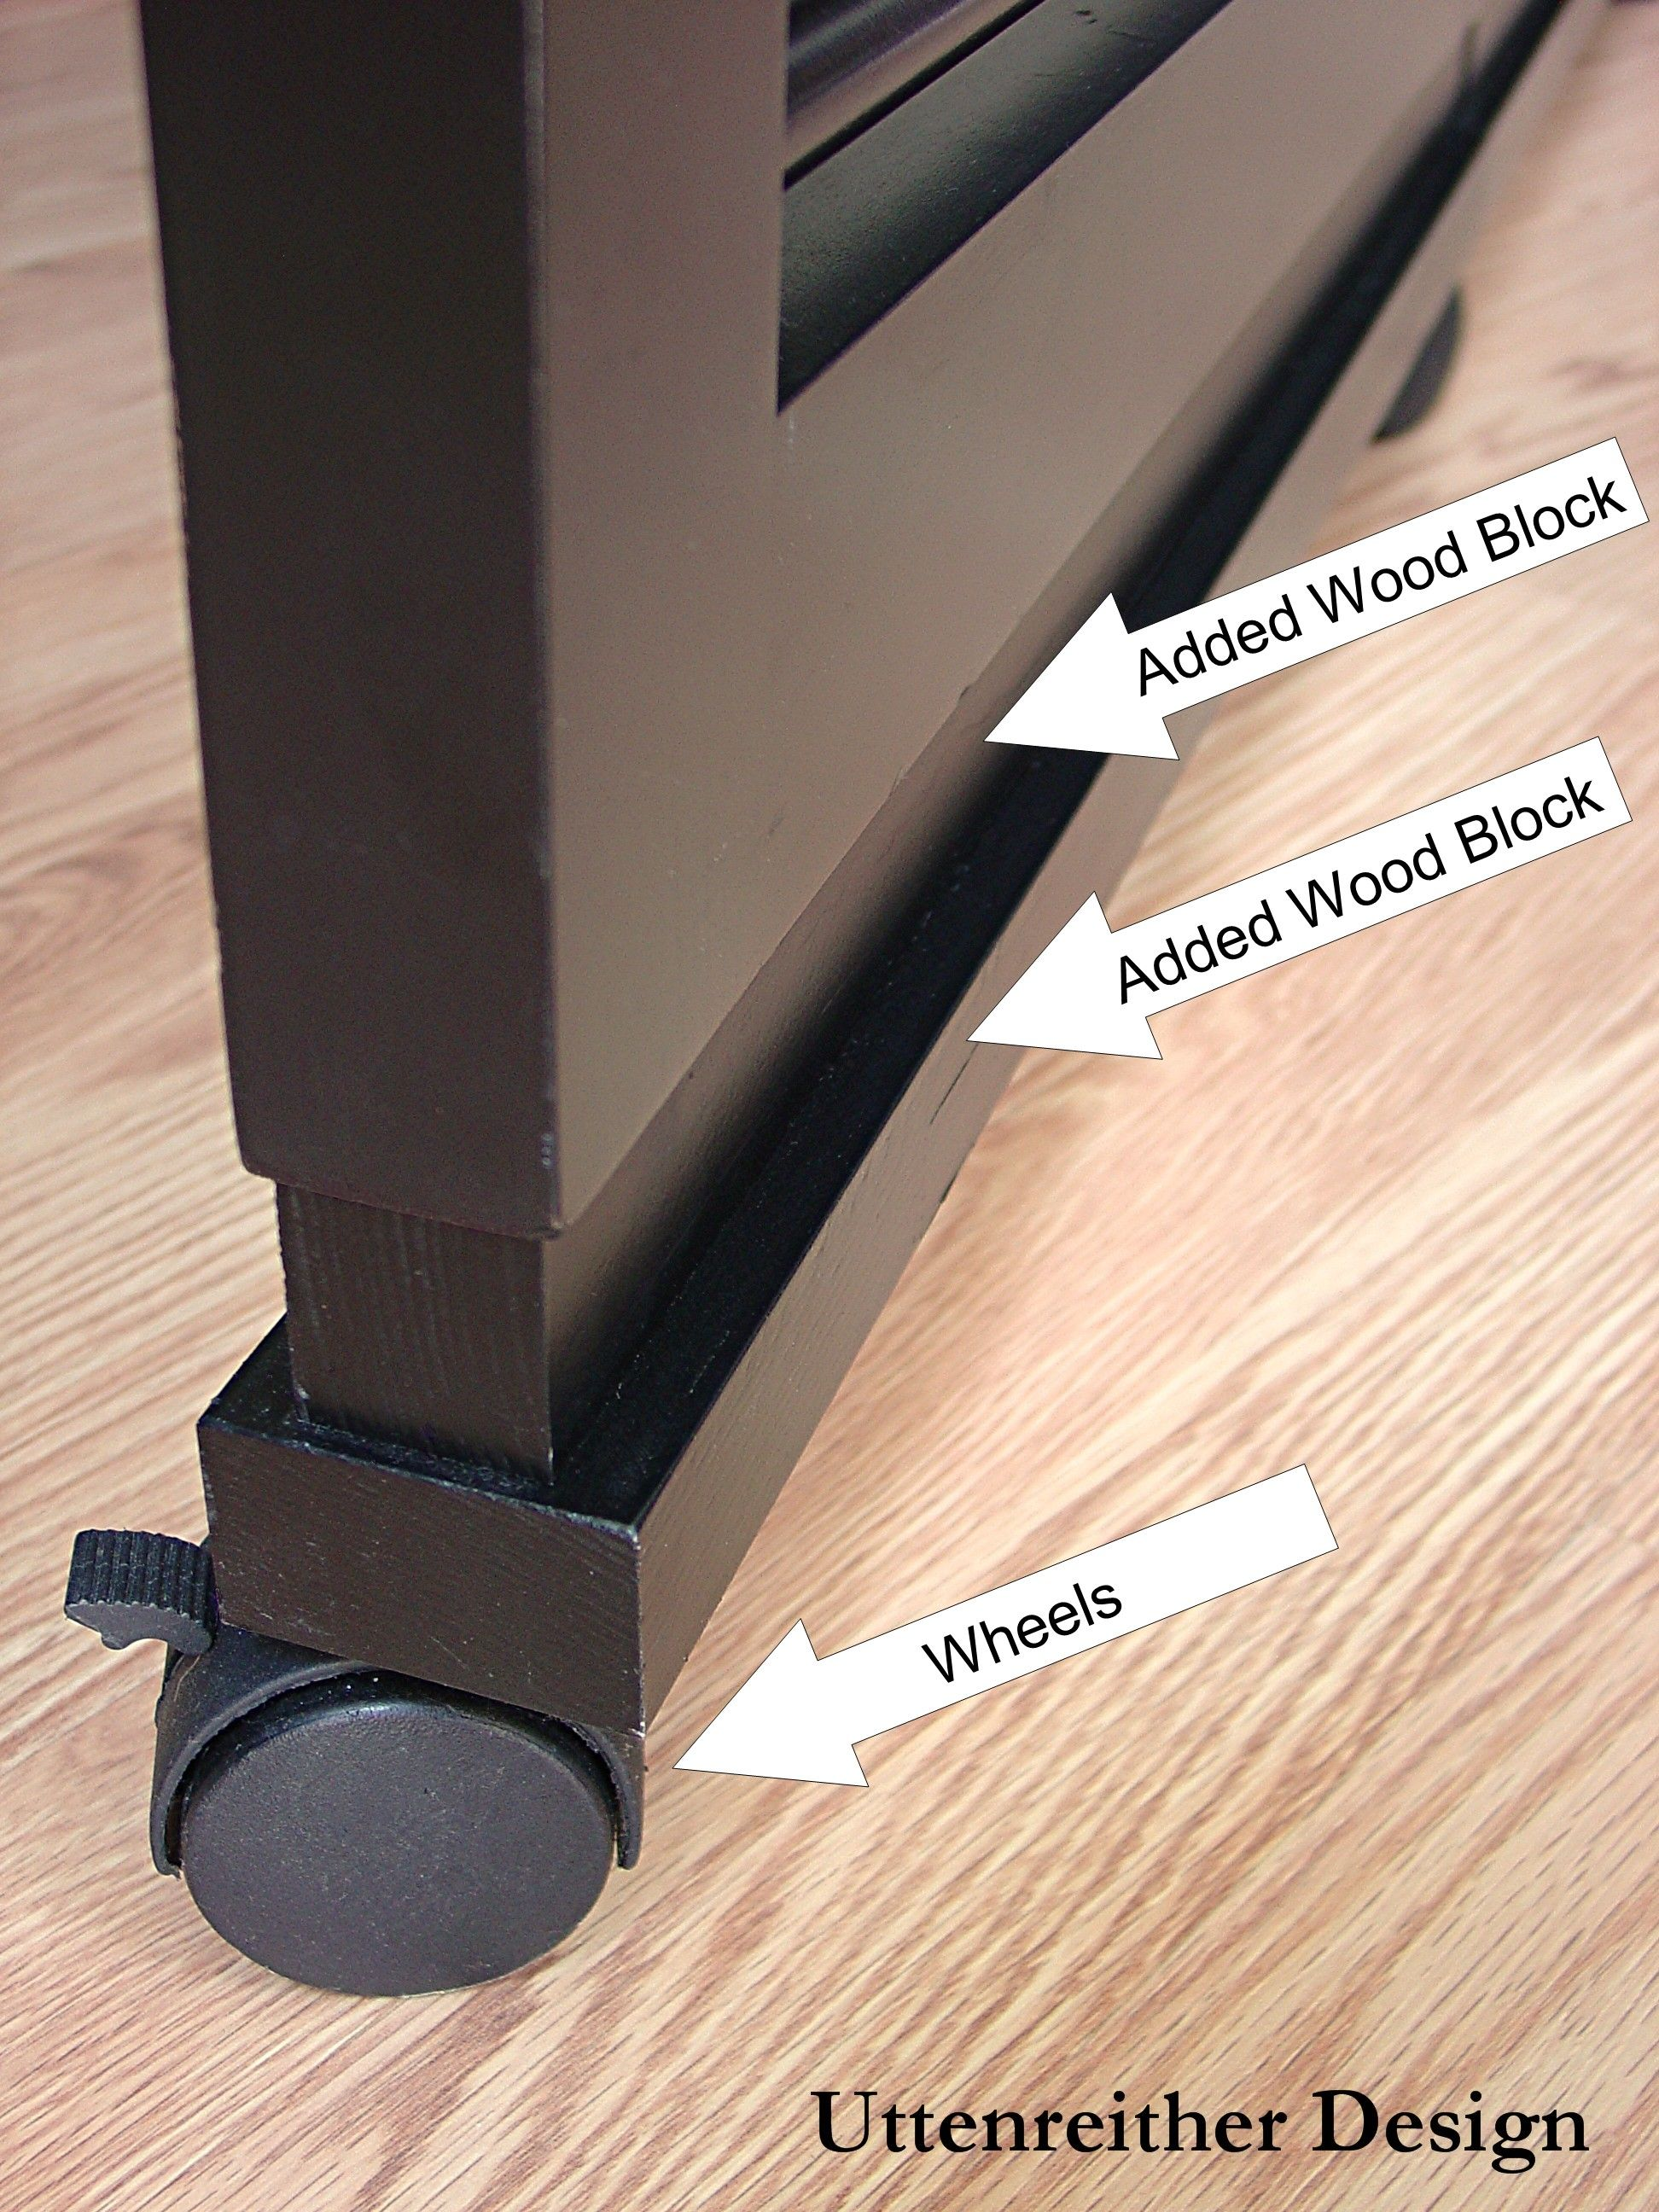 Room Divider How To  Wheels On The Room Divider Provide Endless Options For  Positioning.